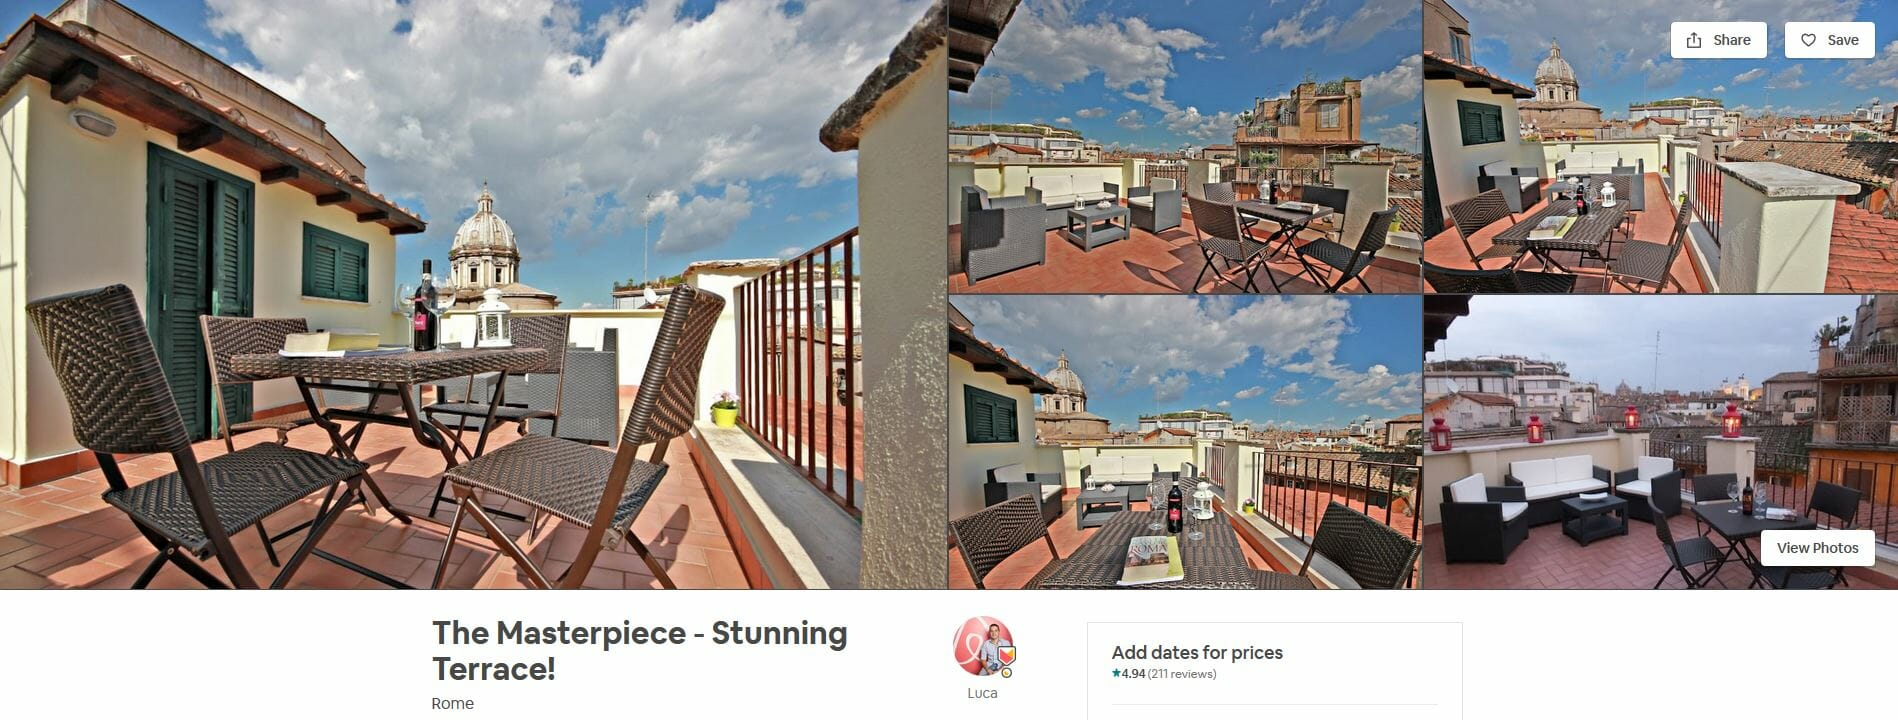 best airbnbs rome The Masterpiece